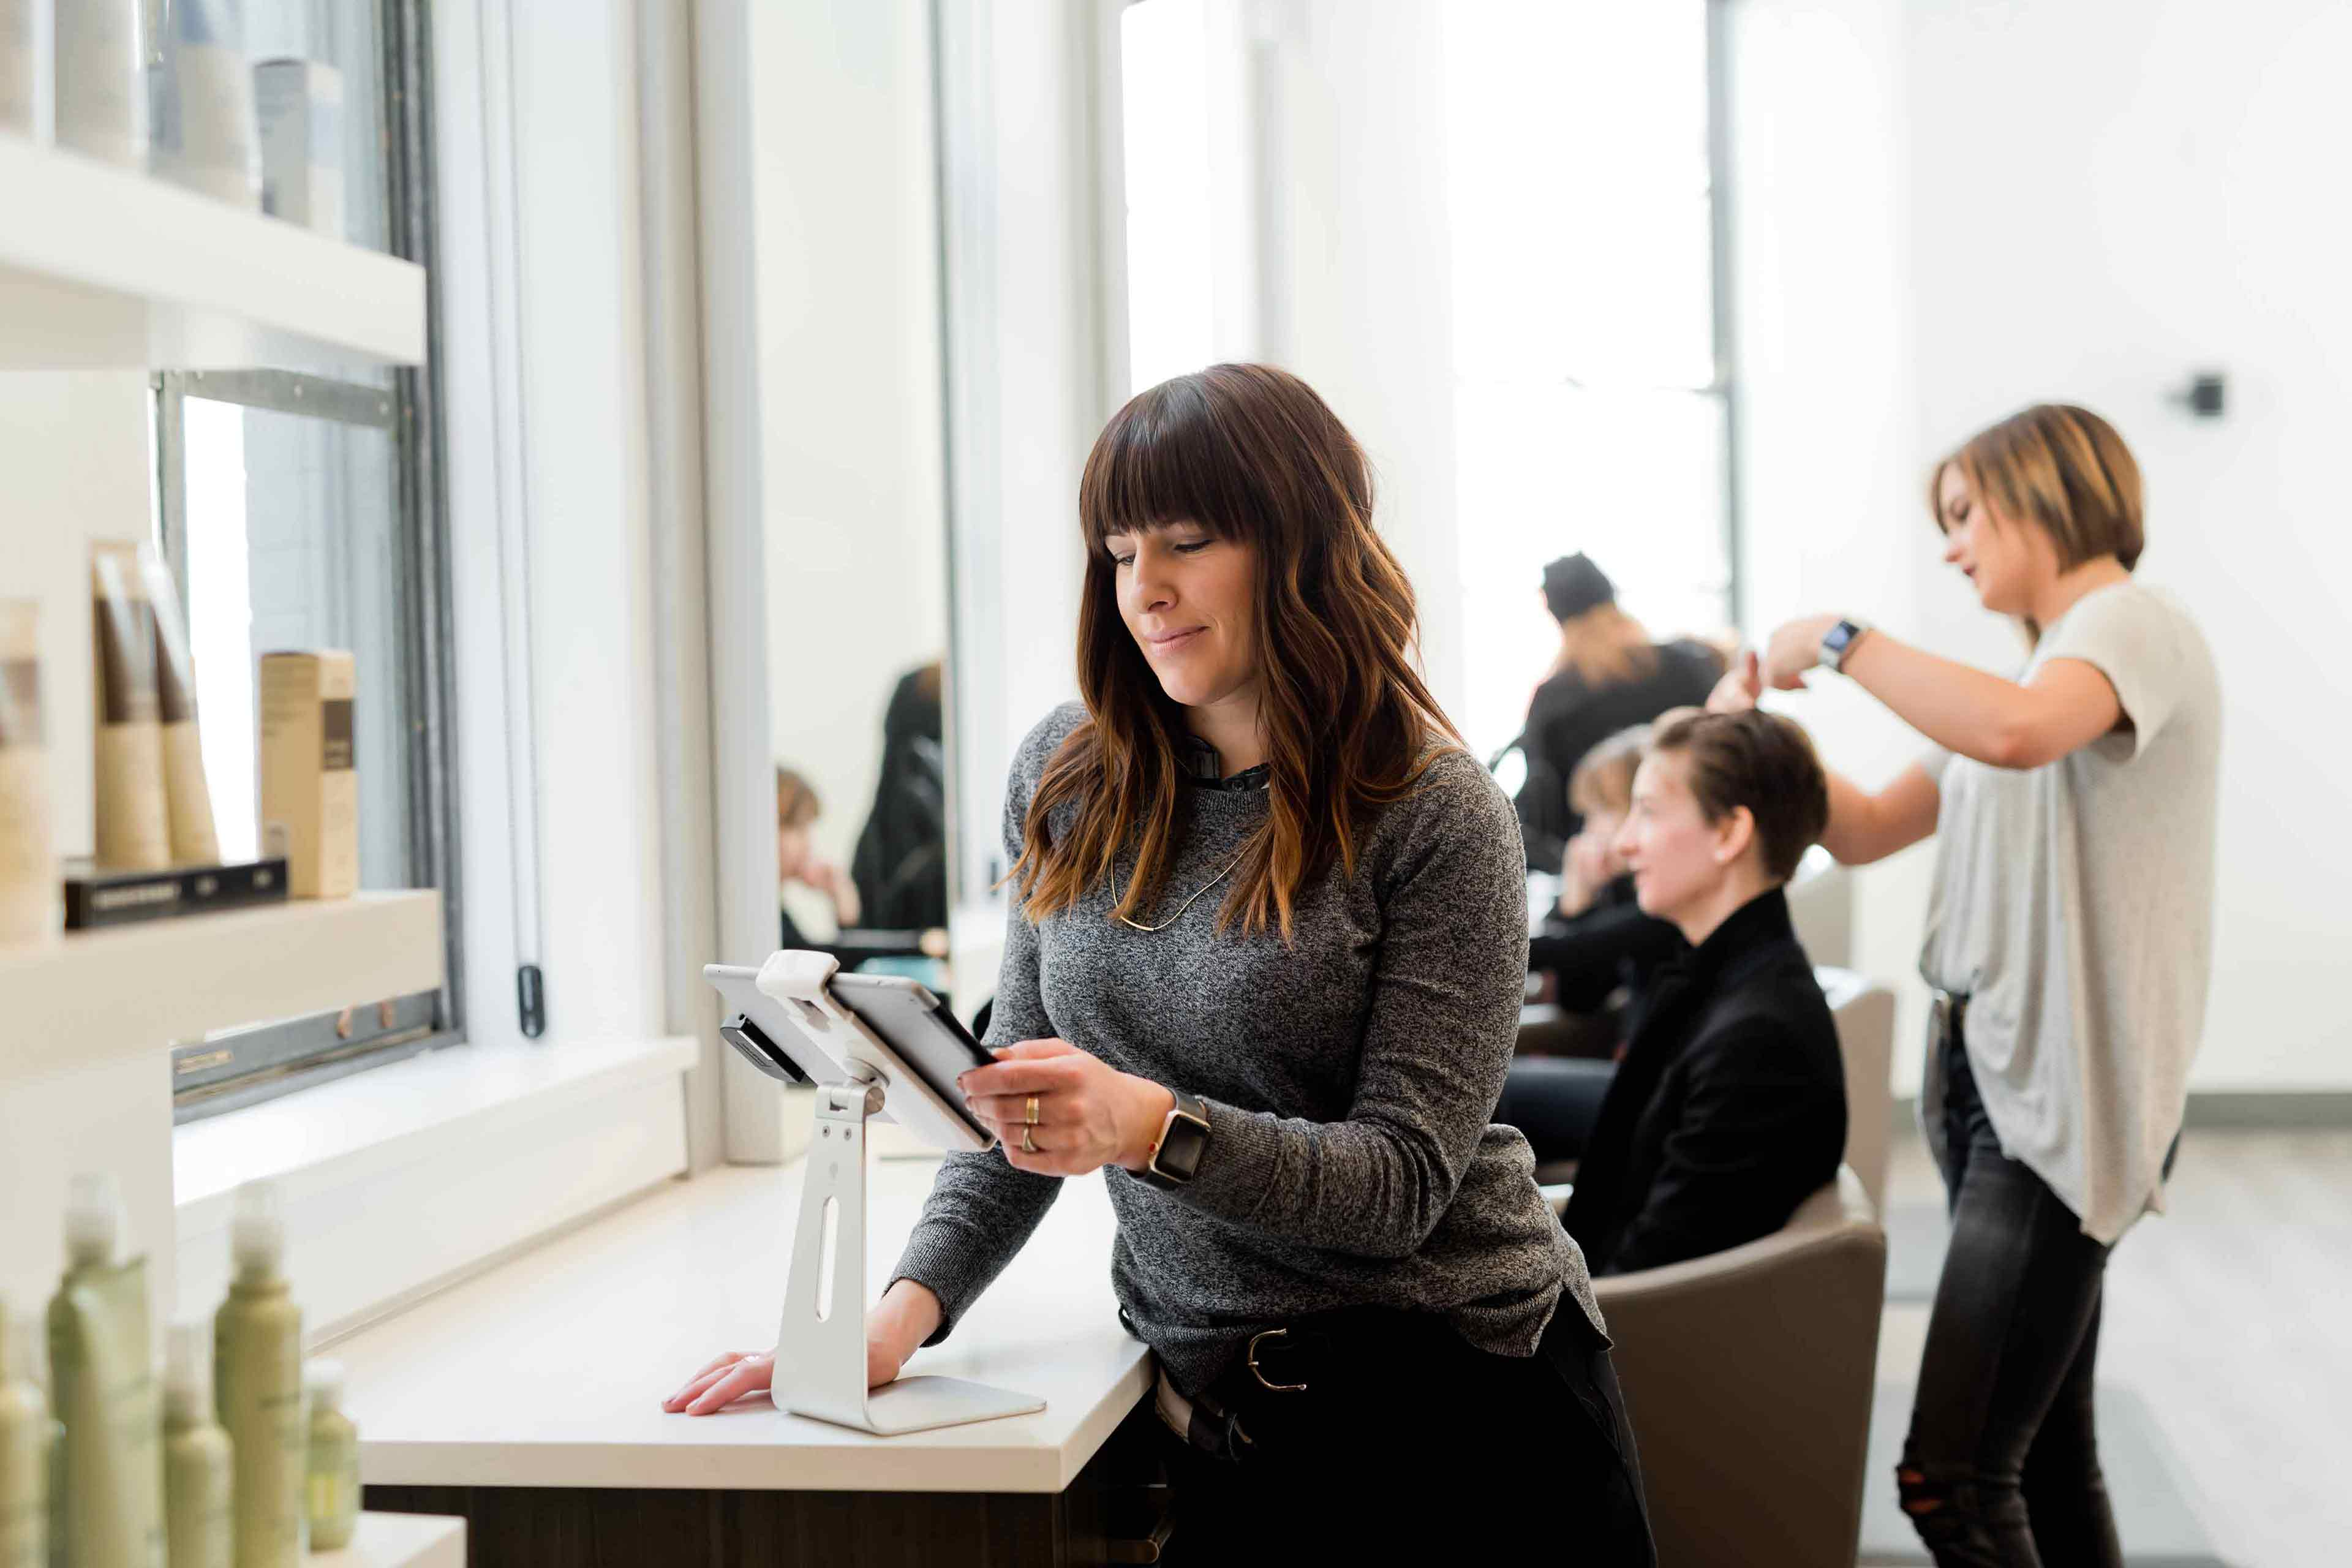 Someone in a hair salon uses a touchscreen mobile device to grow their small business